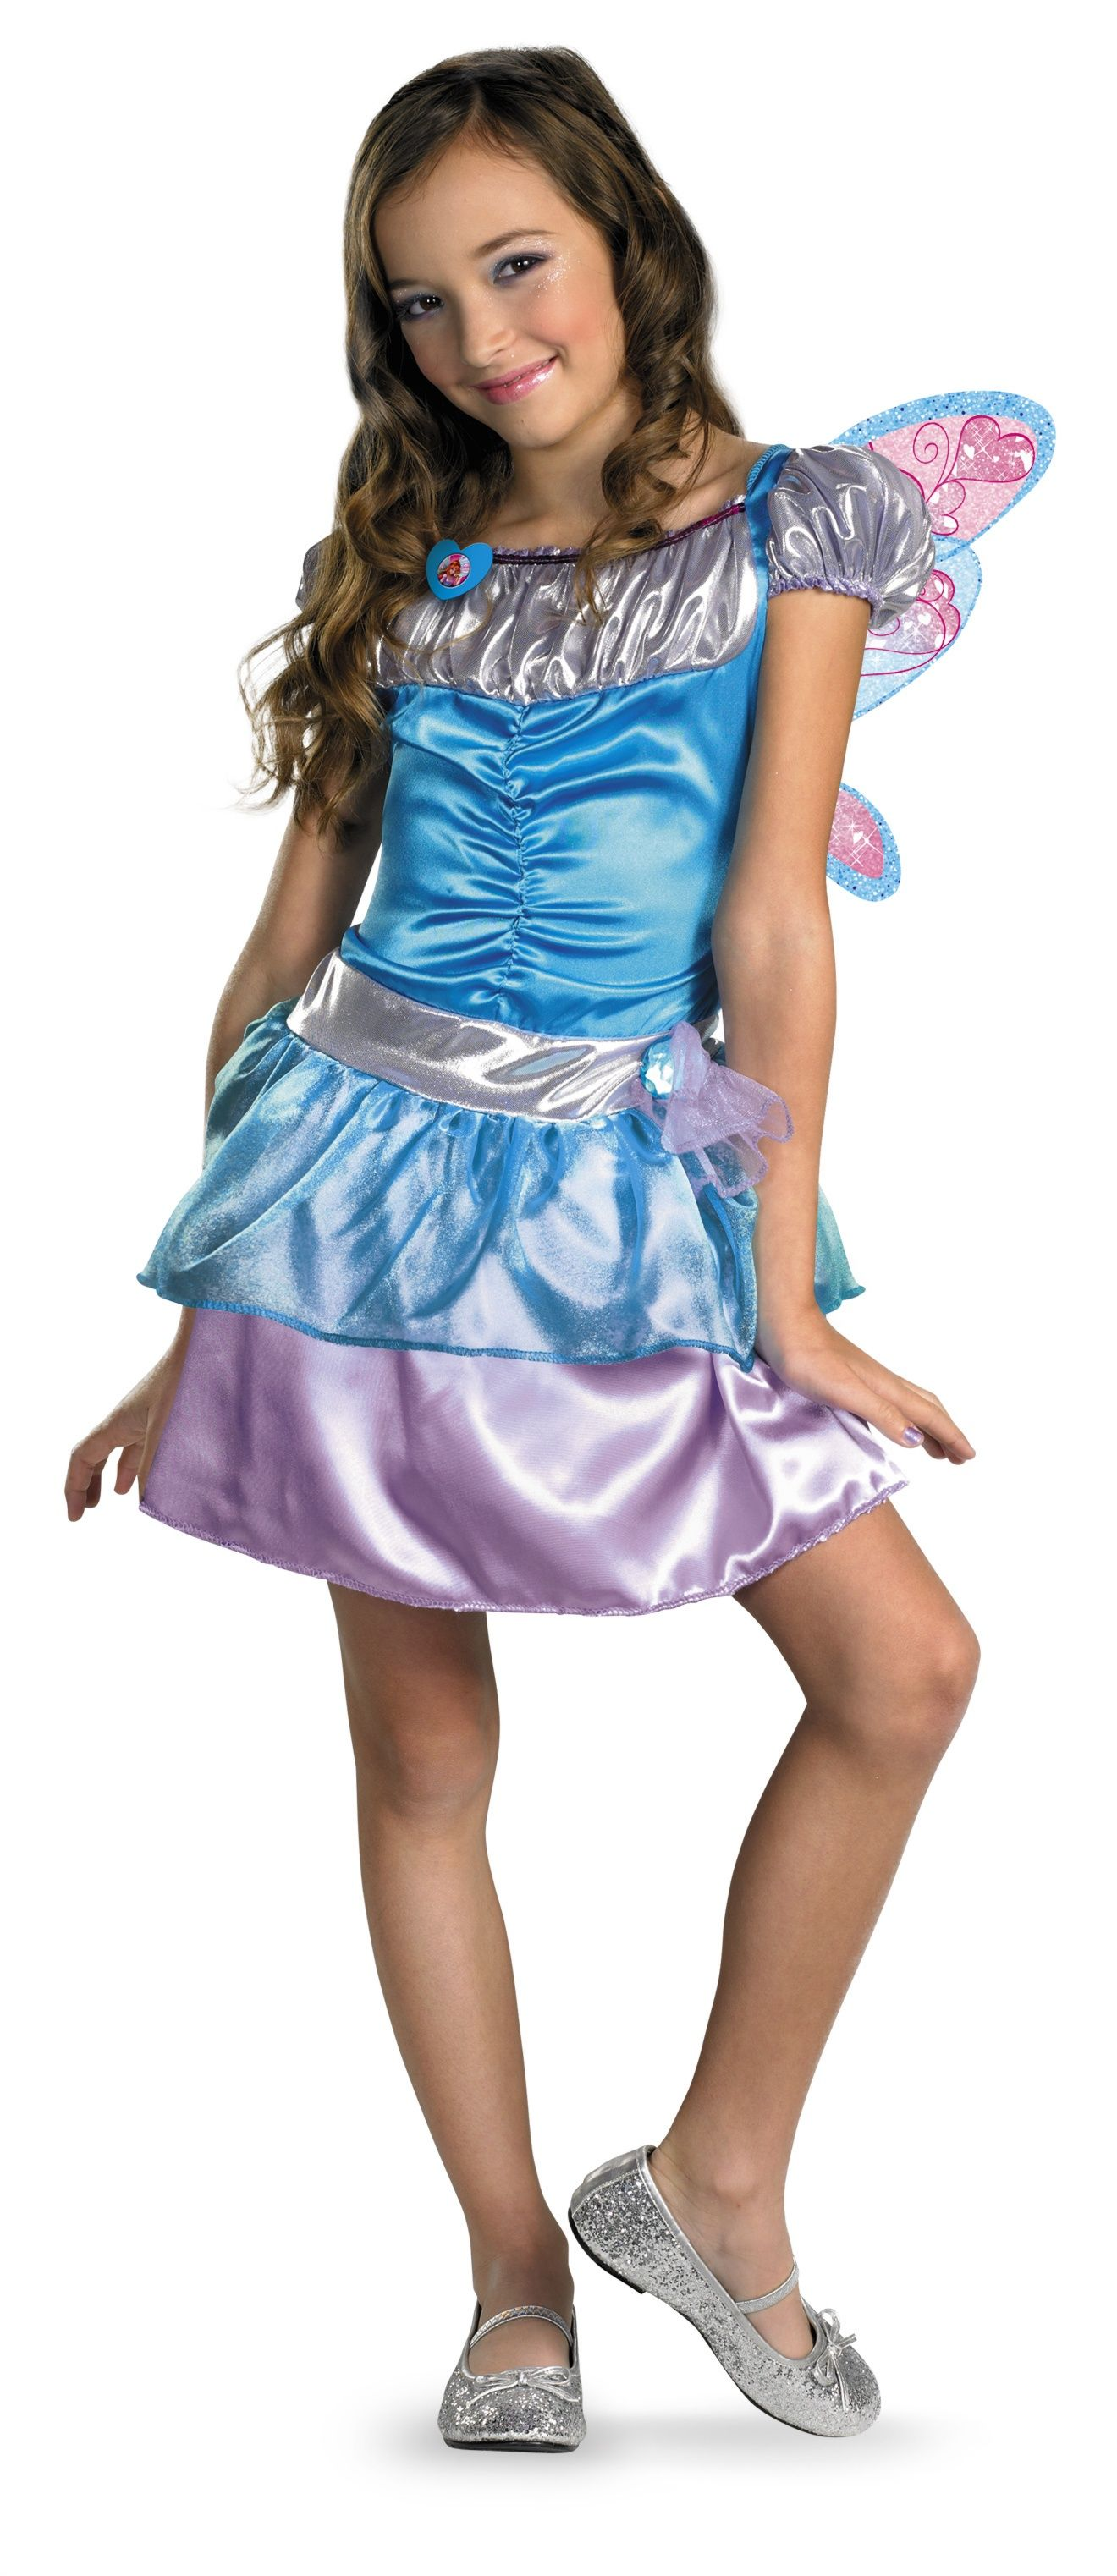 new bloom girls costume winx club by disguise 45879 nickelodeon - Clearance Halloween Costumes Kids